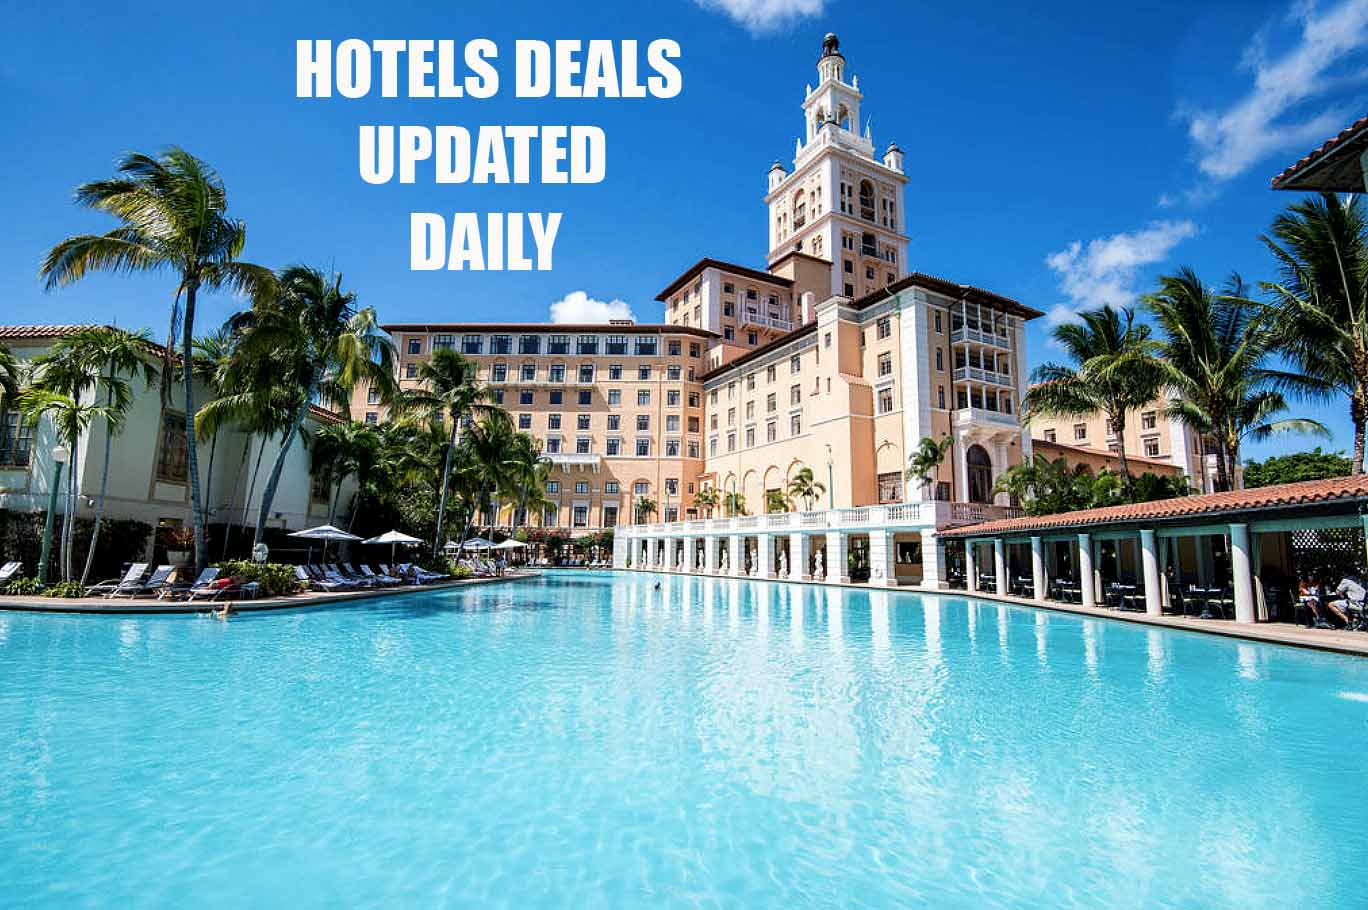 Last Minute Hotel Deals UpDated Daily